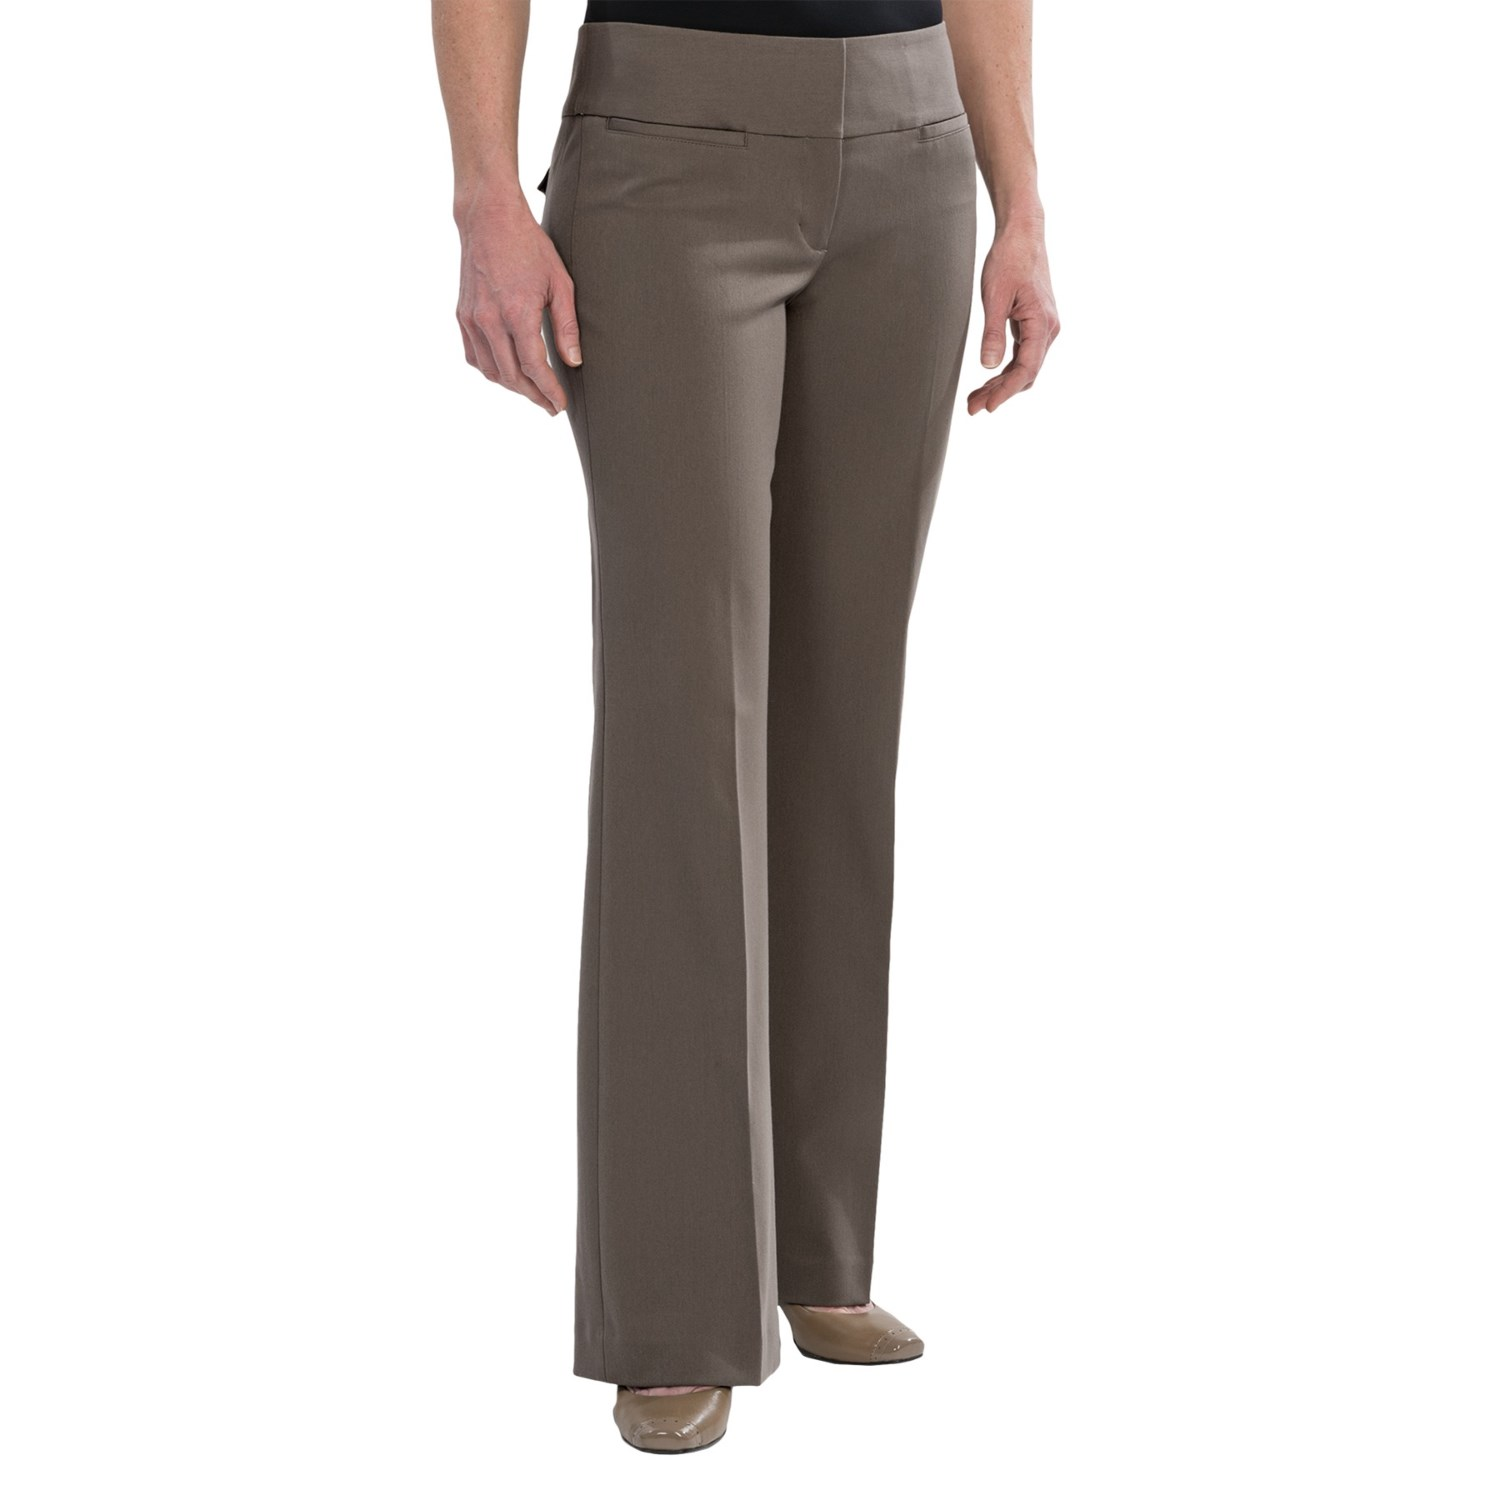 Whether you're looking for women's dress pants for work or laid back capris for your days off, you will find a vast array of pants in an assortment of colors, designs and sizes. Women's leggings are flexible and extremely comfortable for the weekend when you're lounging about the house or running errands.